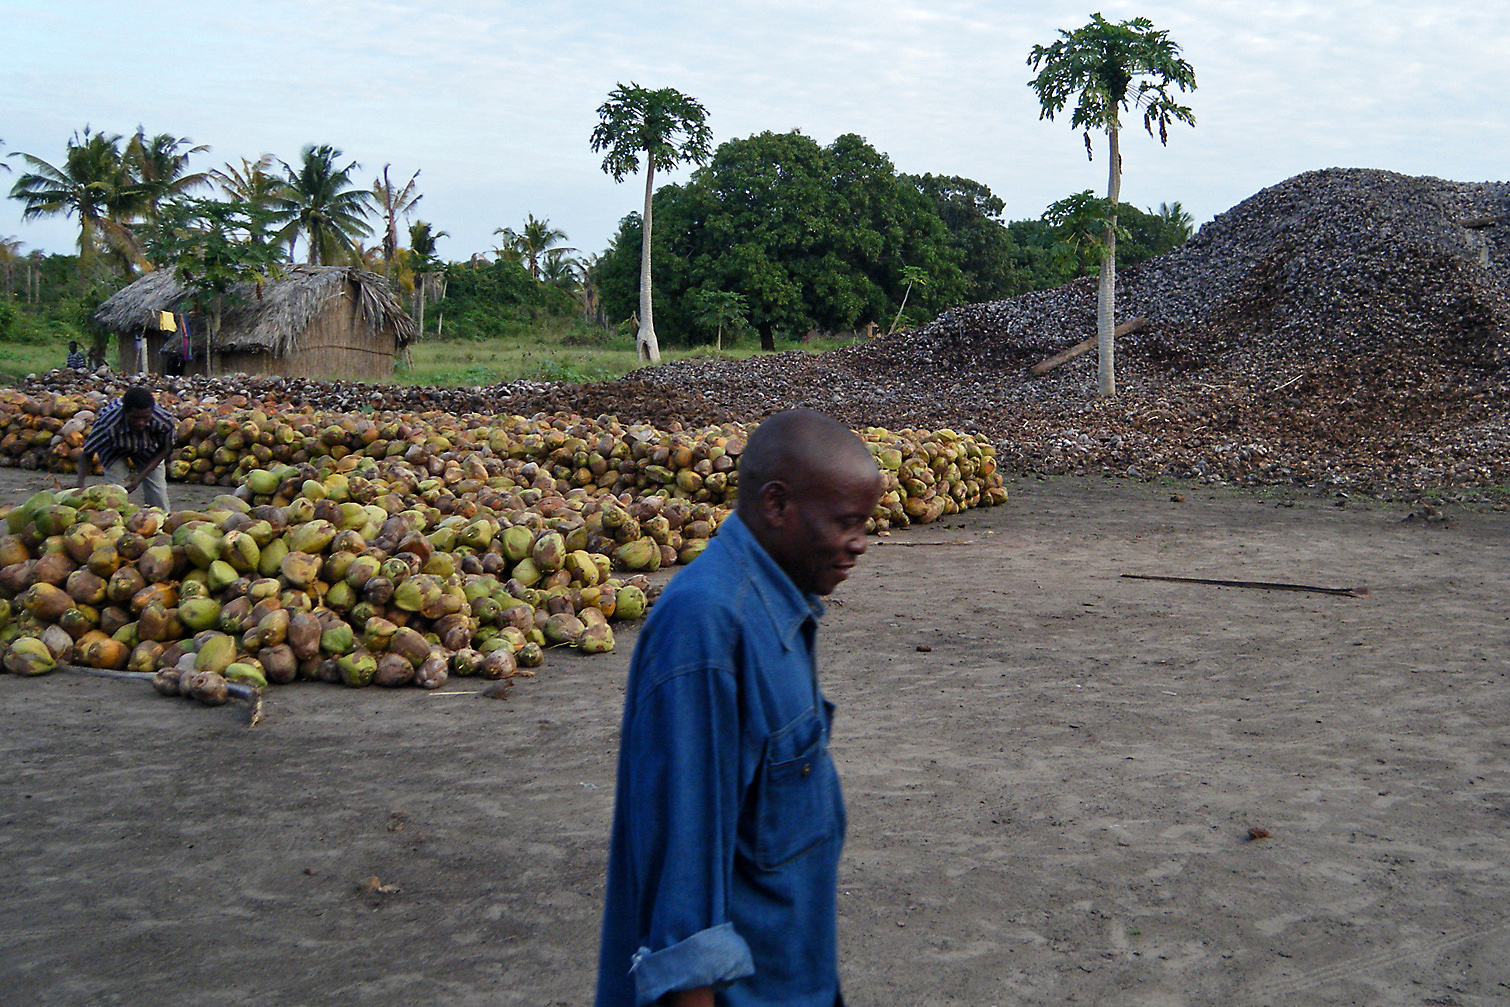 A coconut processing plant in Mozambique